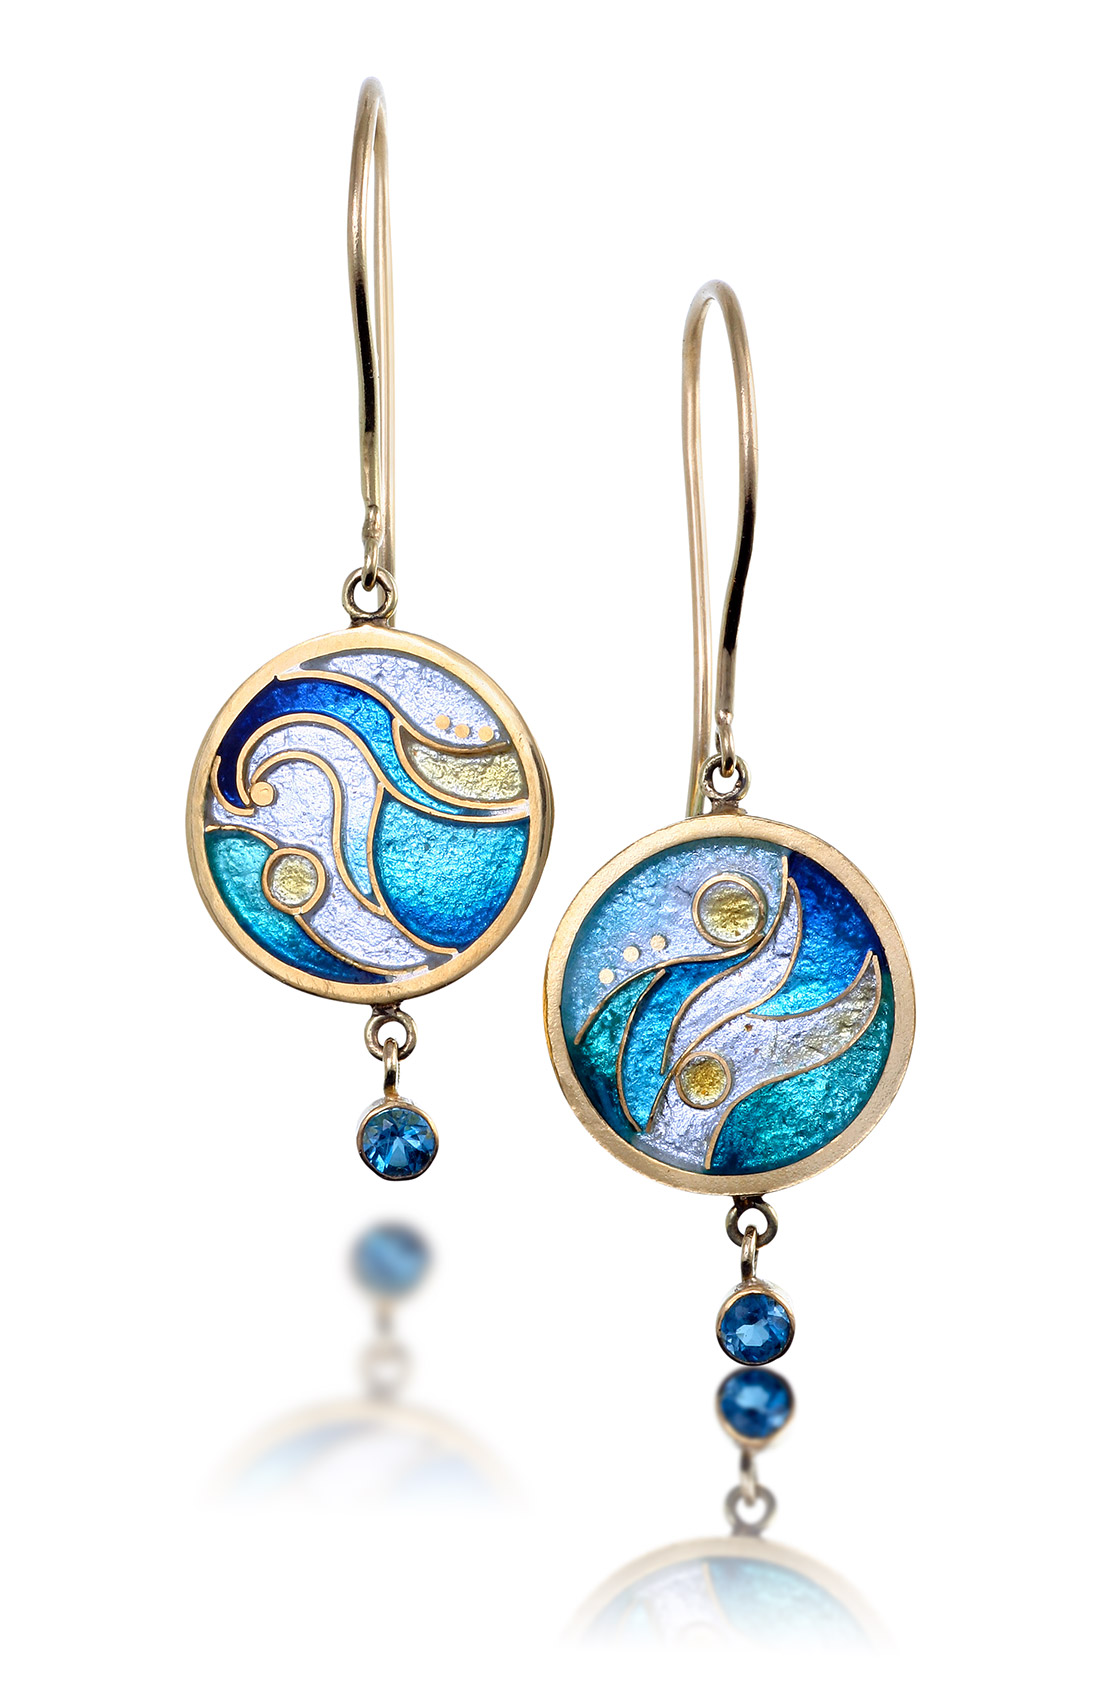 Cloisonne Jewelry | Waves Earrings | Enamel Jewelry by Patsy Croft